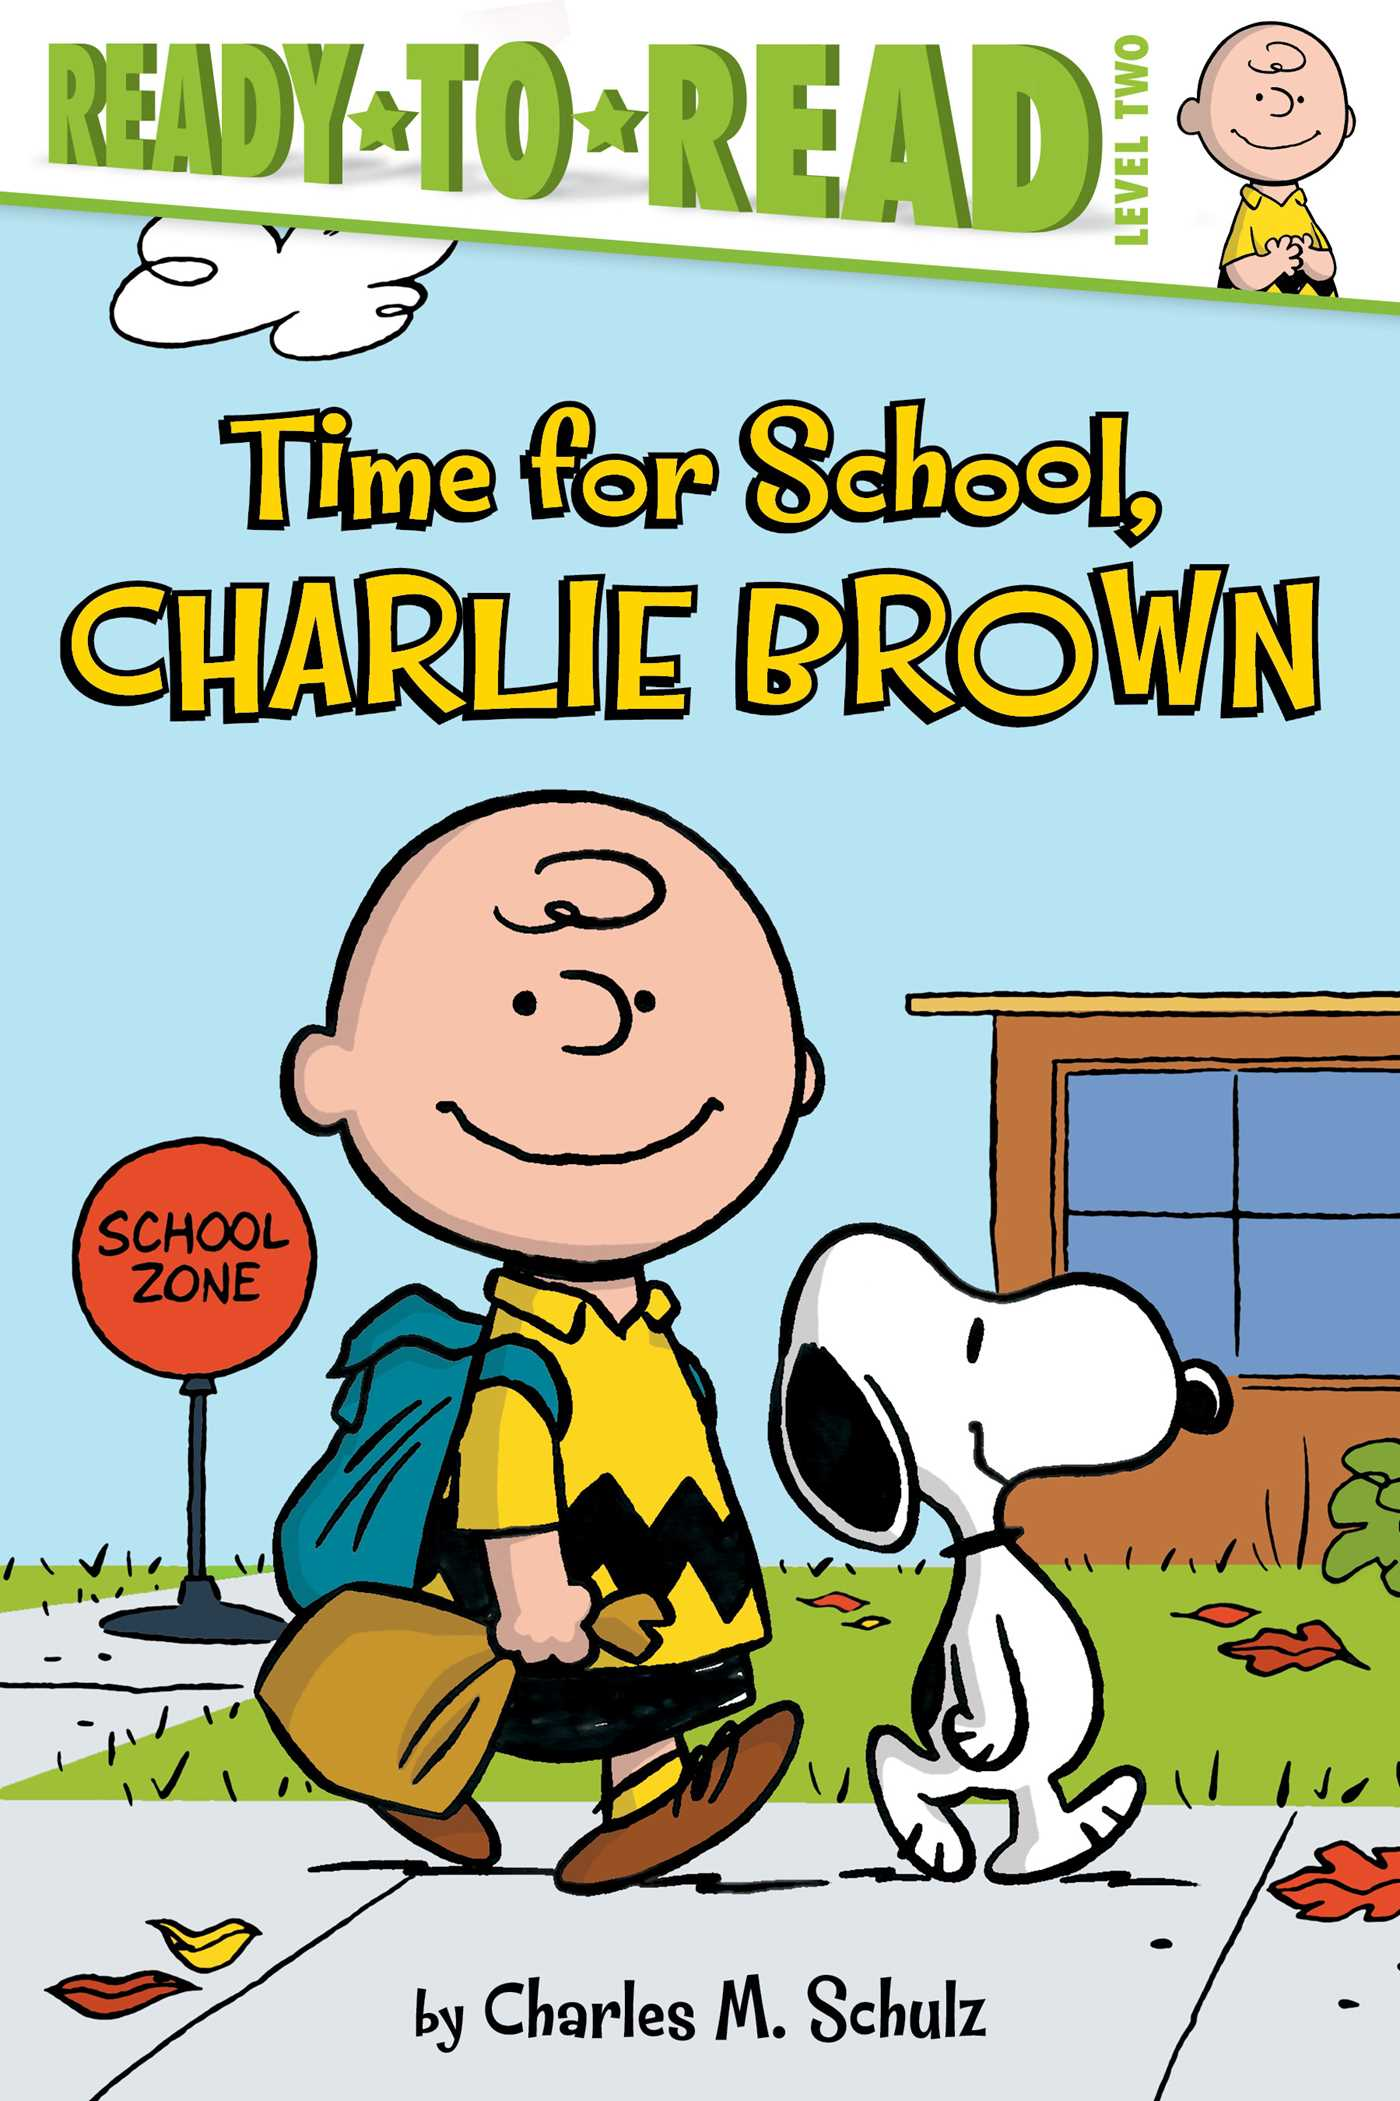 Time for school charlie brown 9781481436052 hr